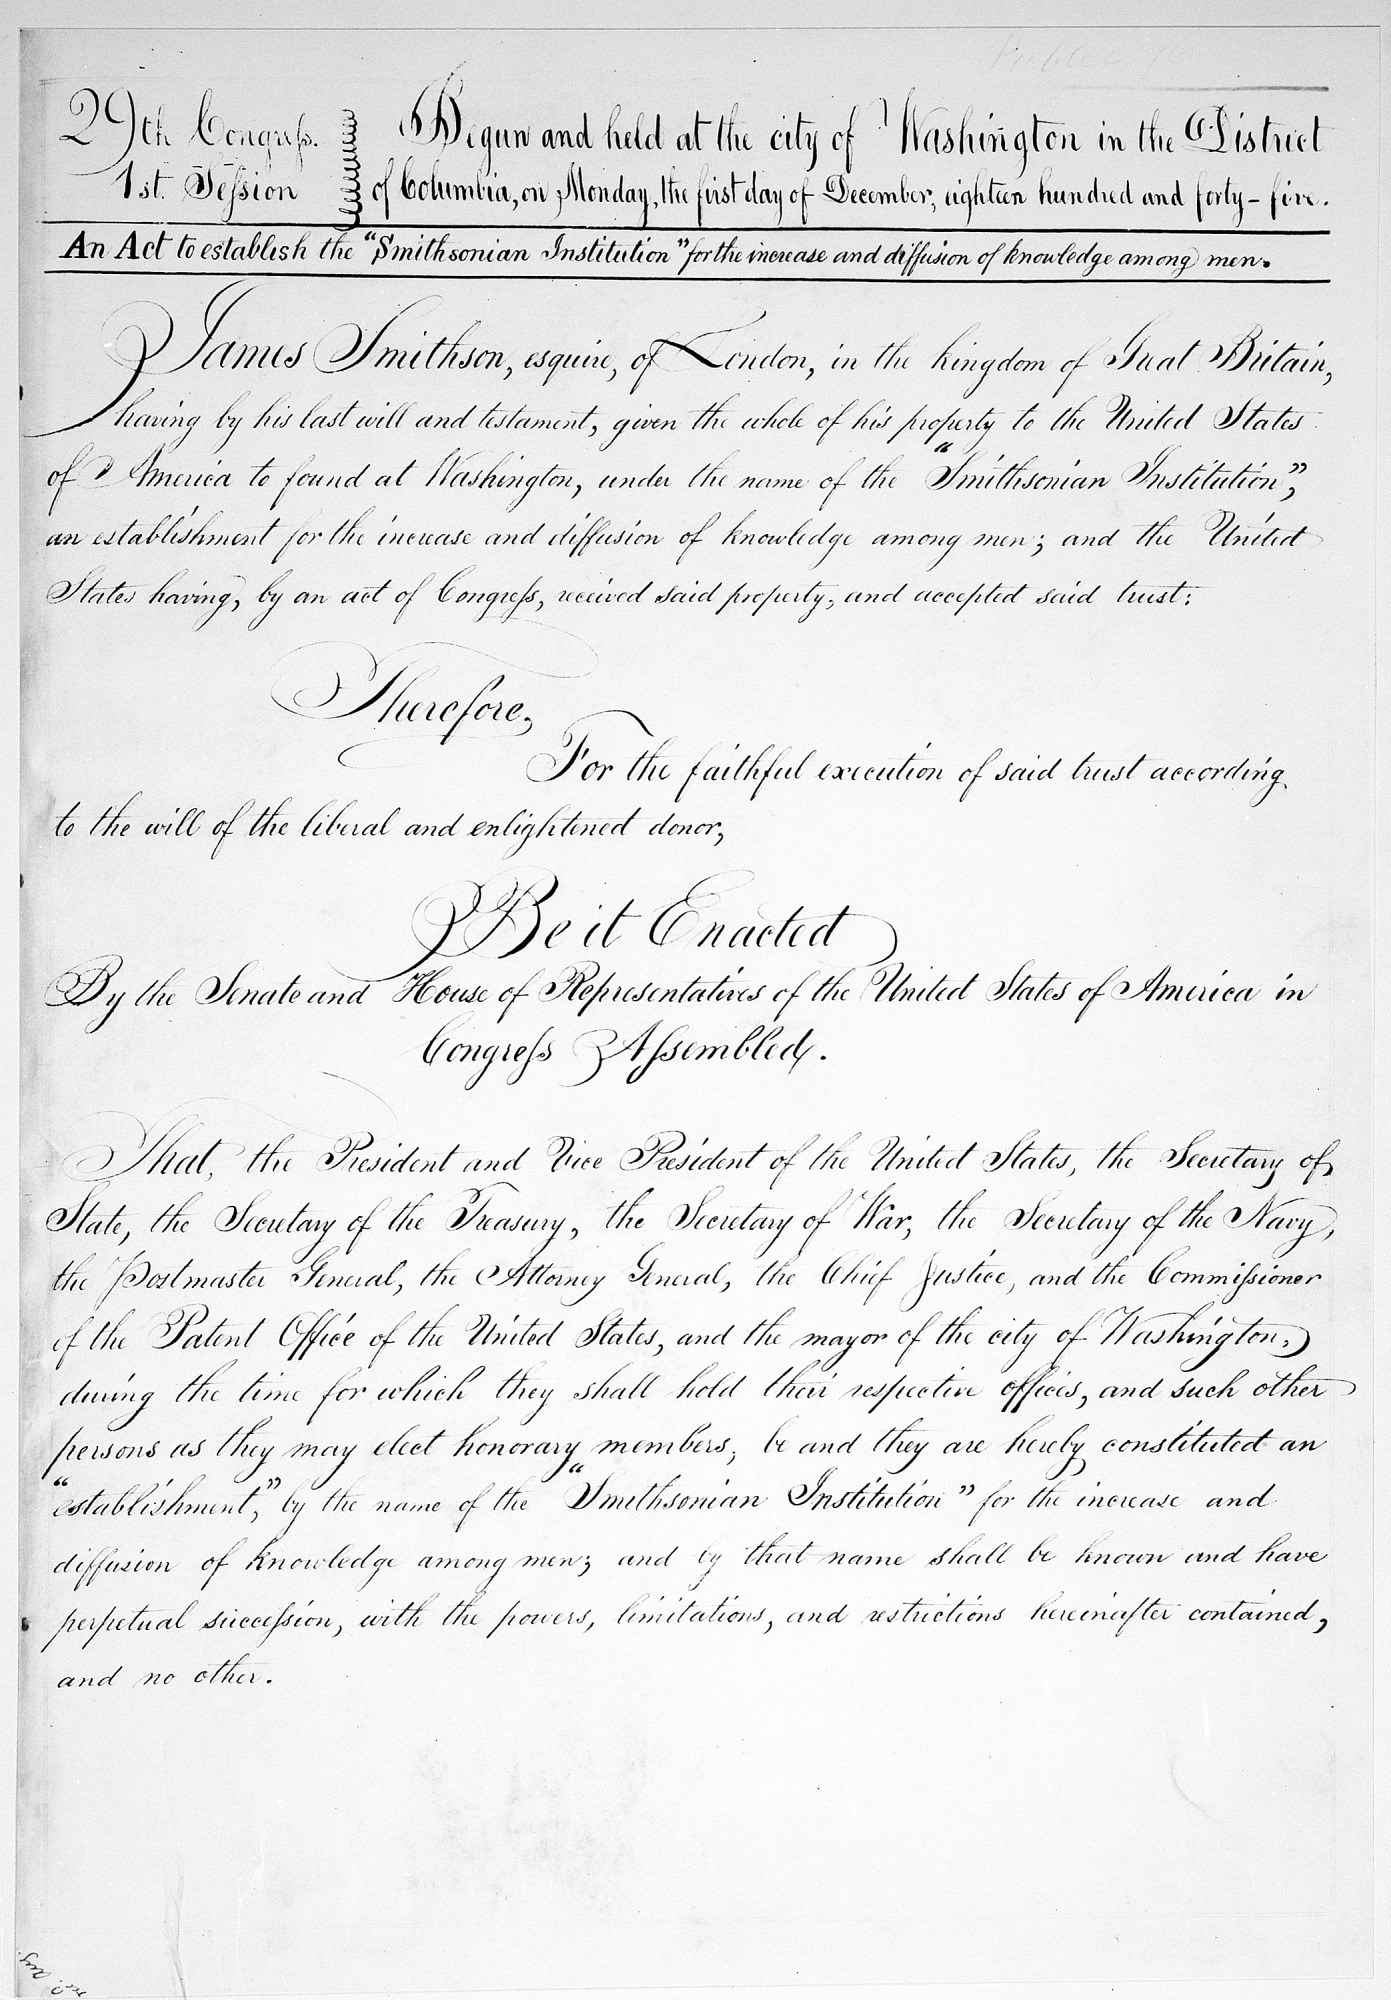 Facsimle of the Act to Establish Smithsonian Institution, by United States Congress, 1846, Smithsonian Archives - History Div, 96-1652 and 96-1653 and 96-1654 and 96-1655 and 96-1656 and 96-1657 and 96-1658 and 96-1659 and 96-1660.